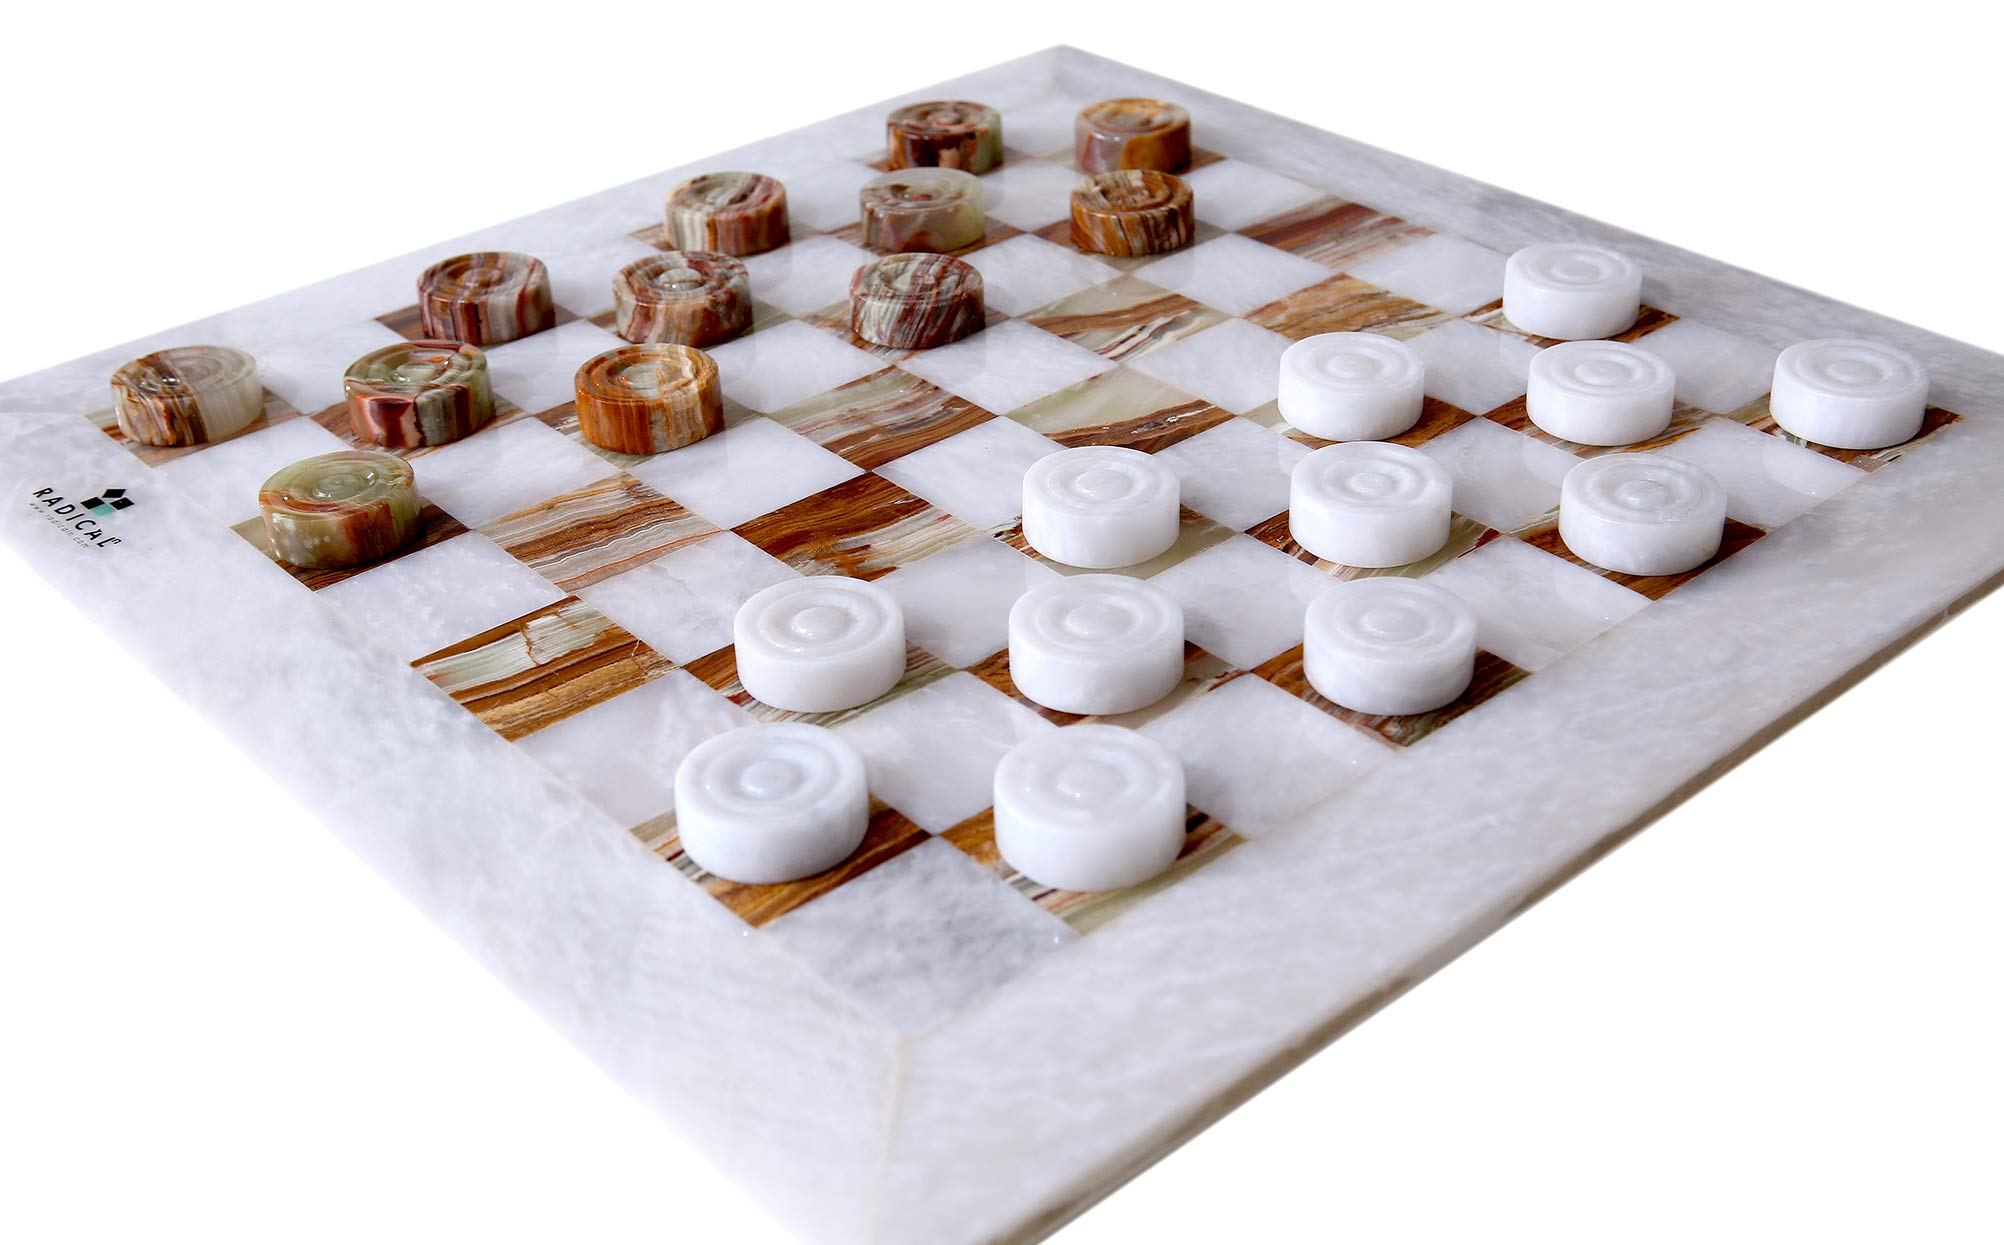 RADICALn Checkers Board Game Handmade Marble 12 Inches 2-Player Draughts Coffee Time Checker Game Set for Kids - Non Chinese Non Plastic Non Chess Set (White and Green Onyx)